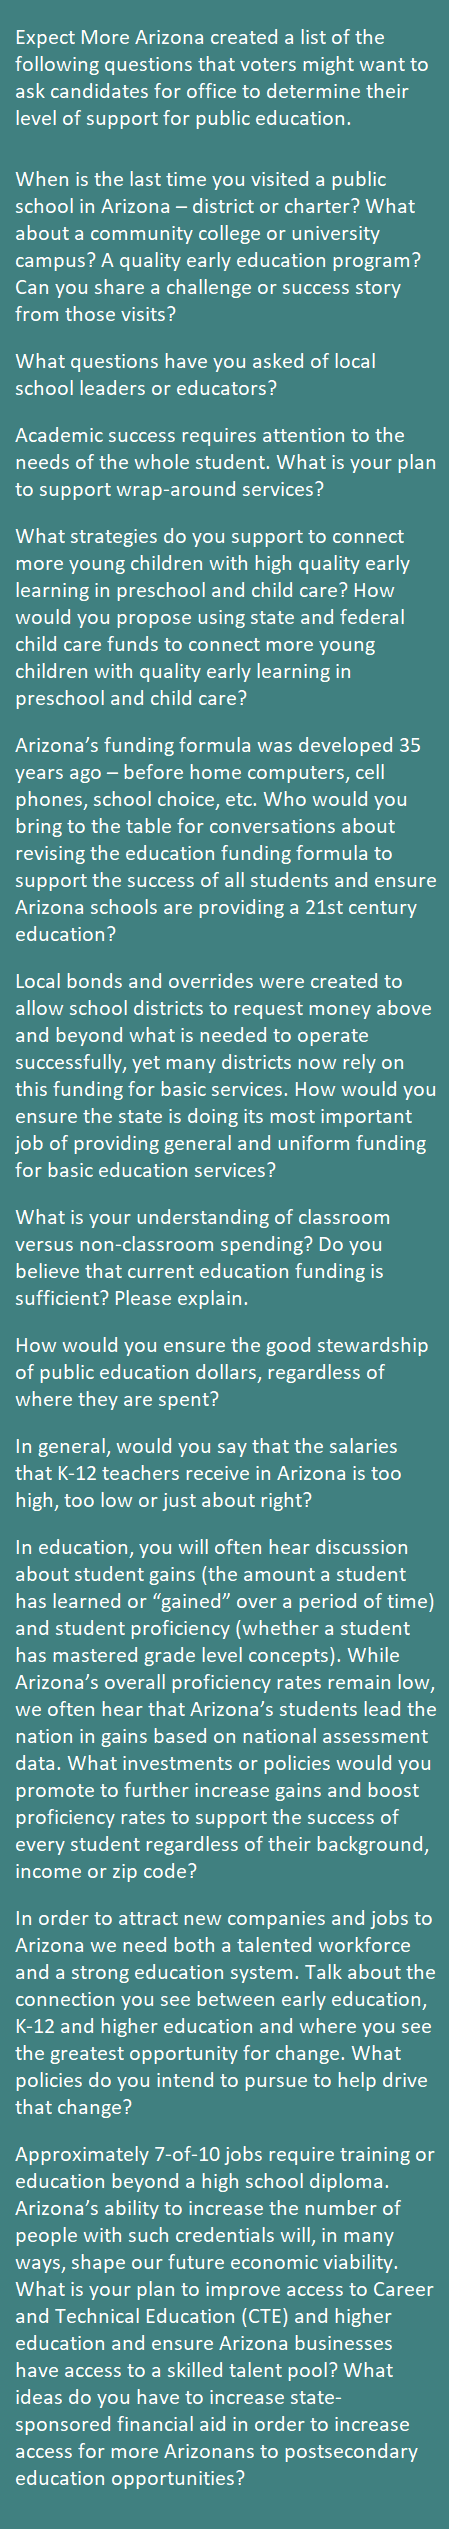 Voting records show legislators' levels of support for public education Expect-More-Arizona-questions-to-ask-candidates-sidebar